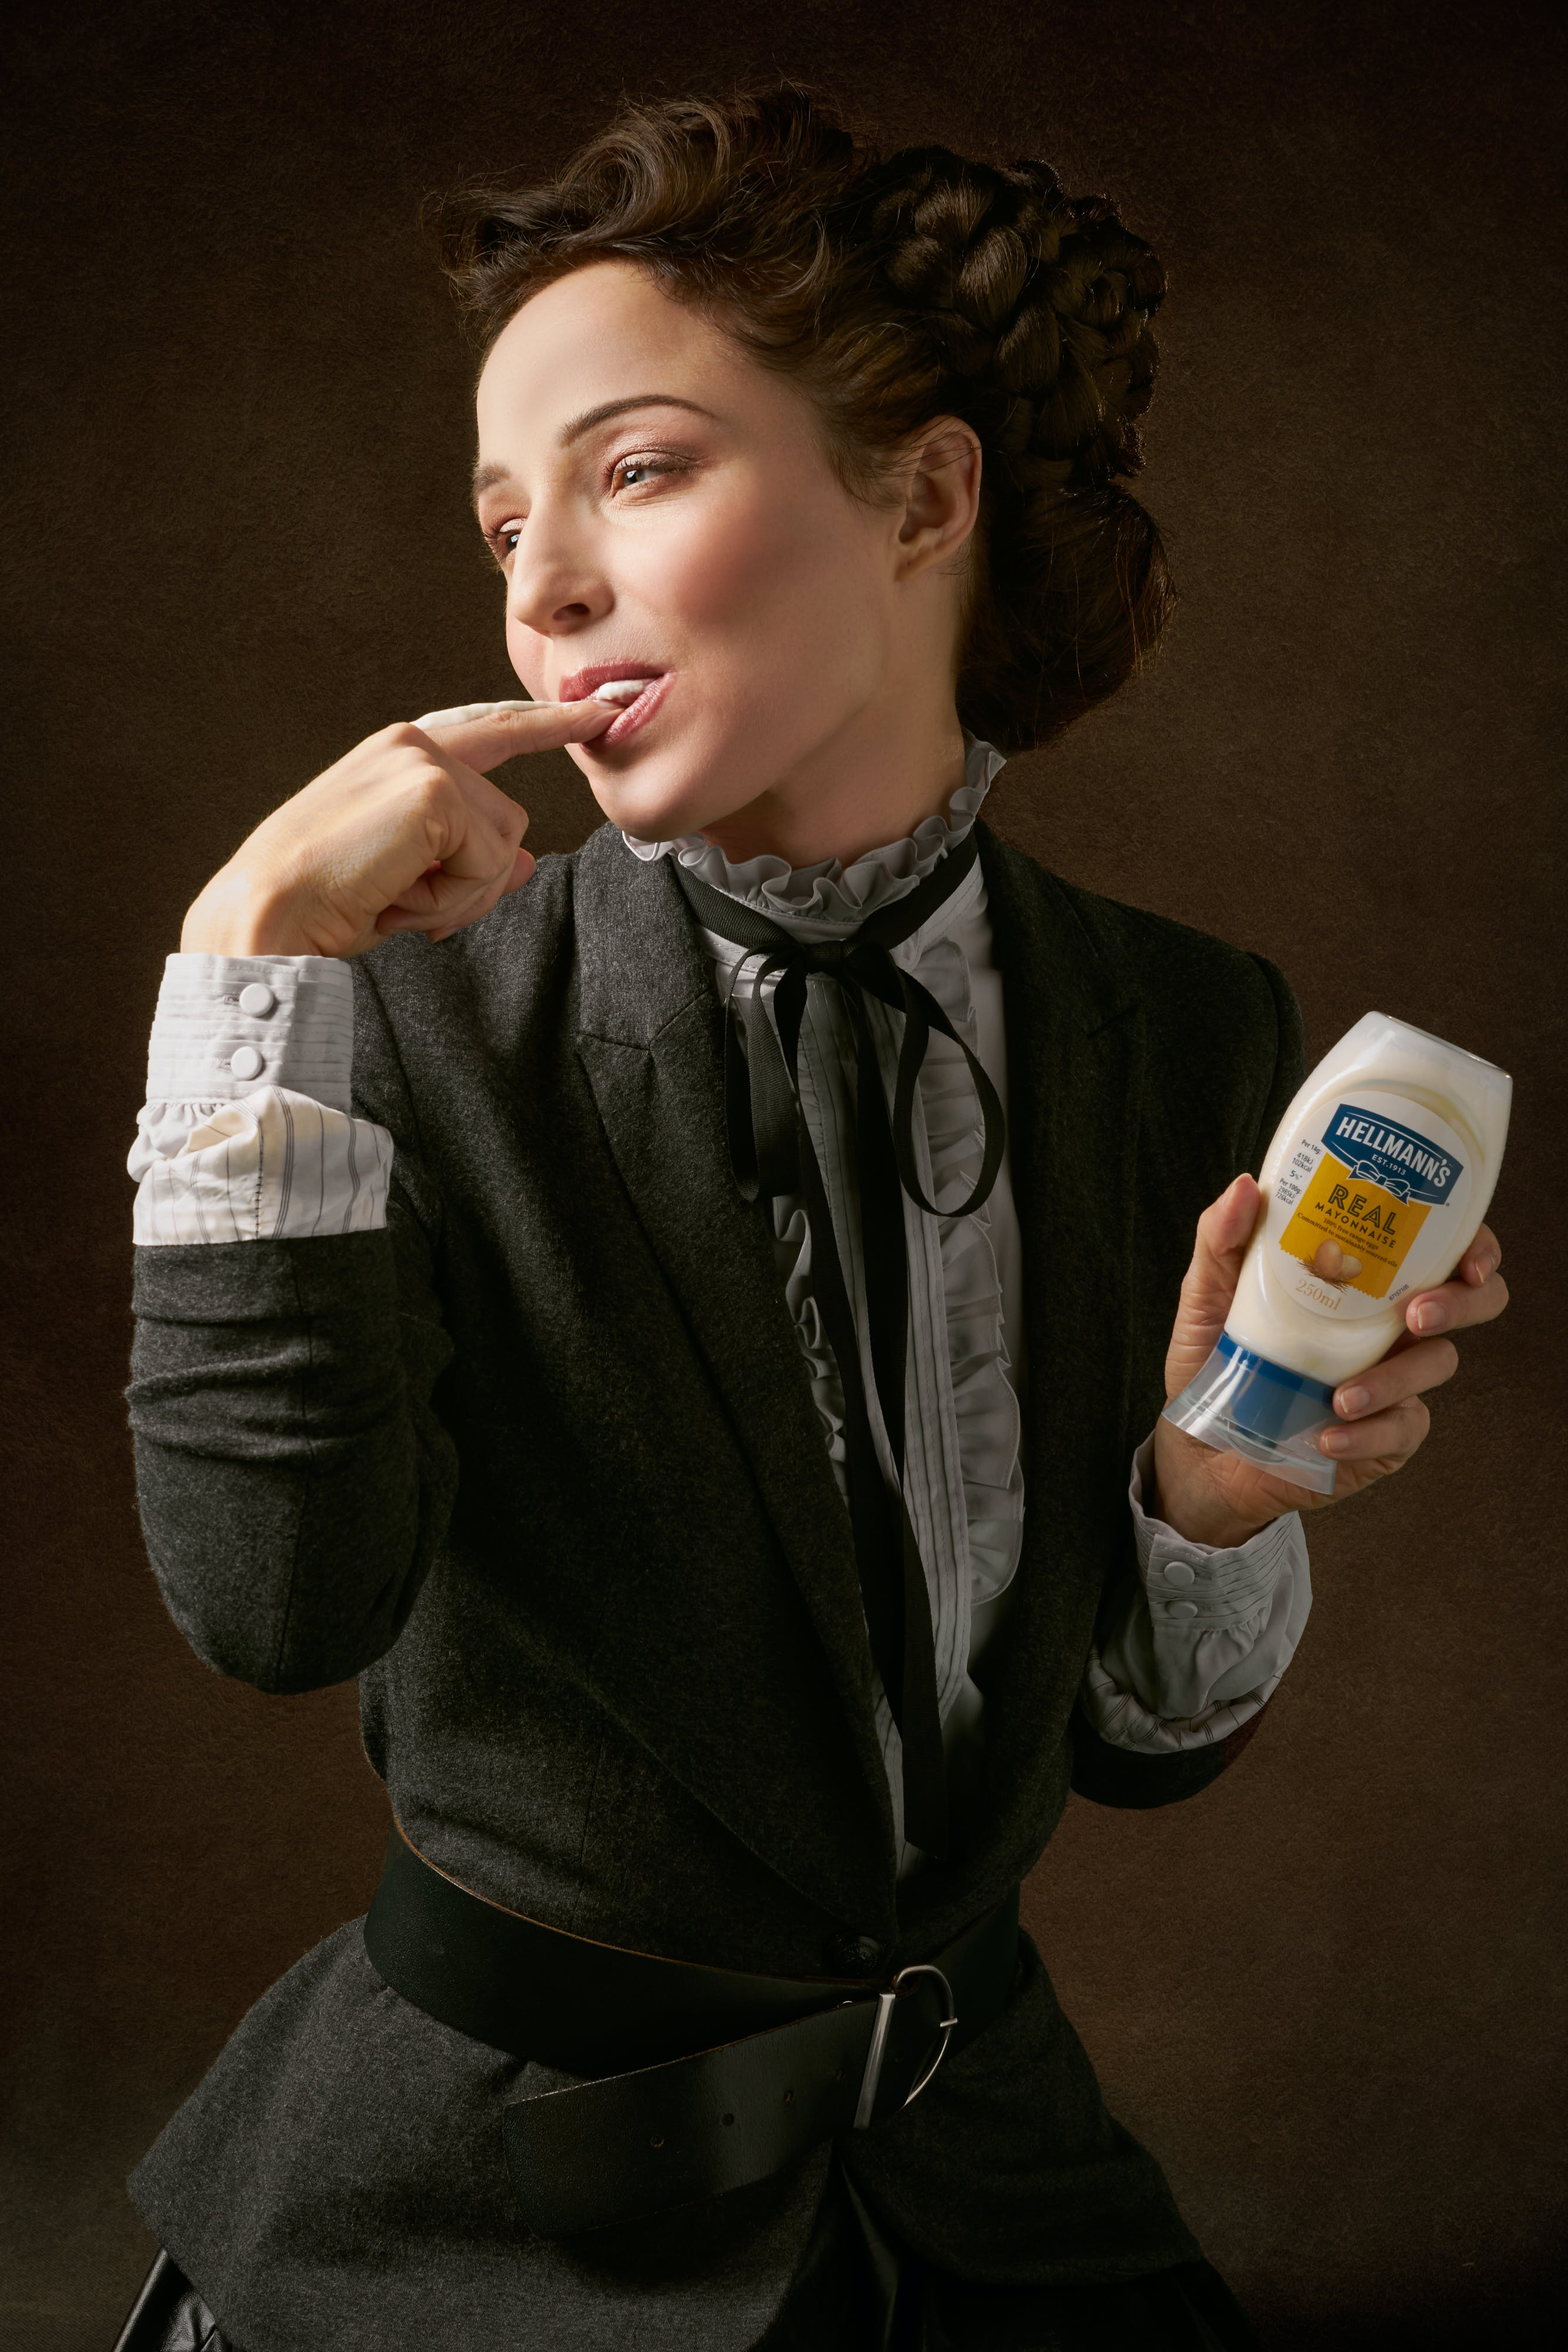 Woman in Black Coat Holding Product Bottle